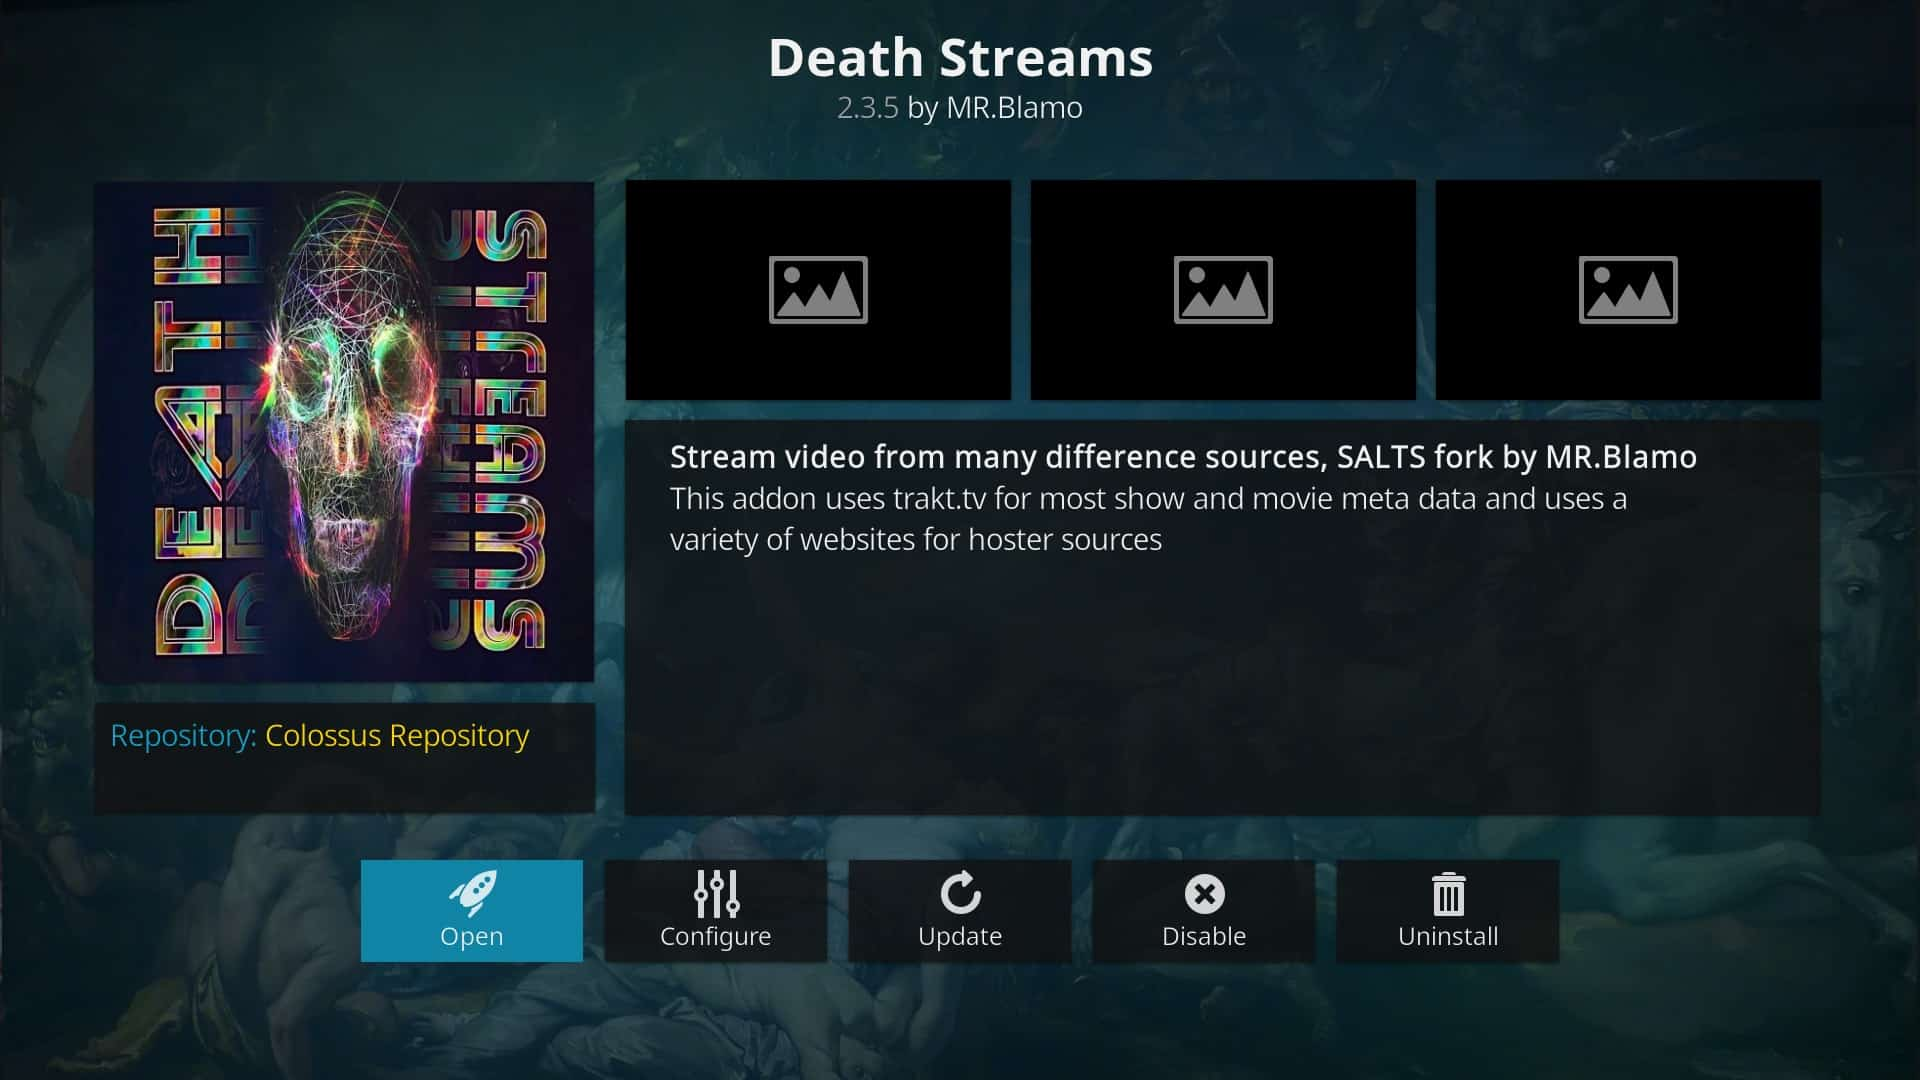 Death Streams Kodi addon: is it safe to use? What are the alternatives?